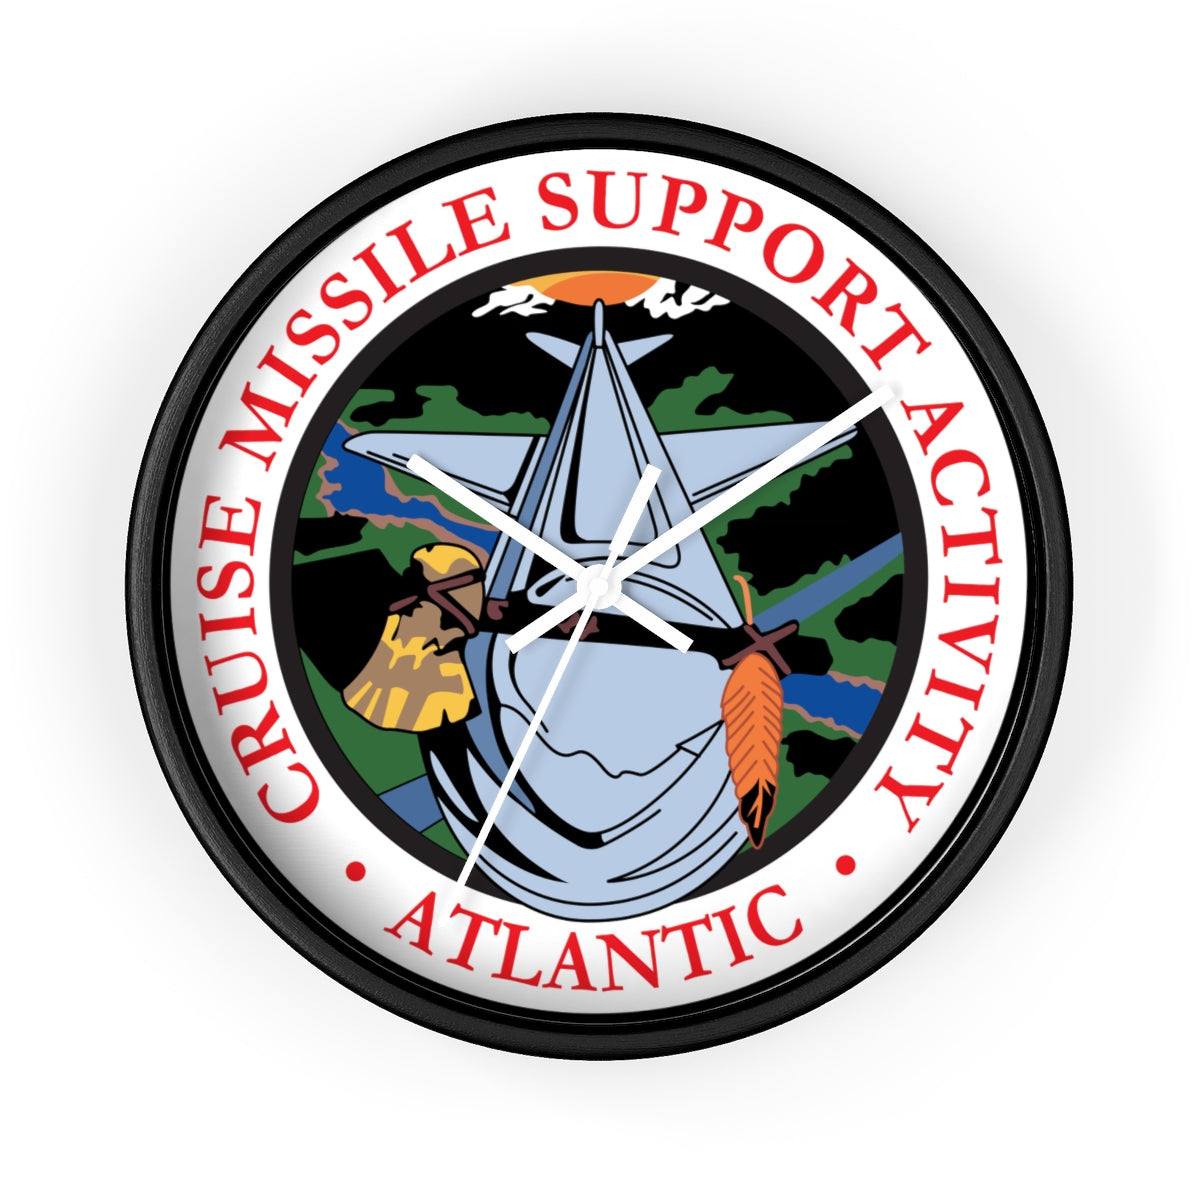 CMSA Atlantic - Wall clock